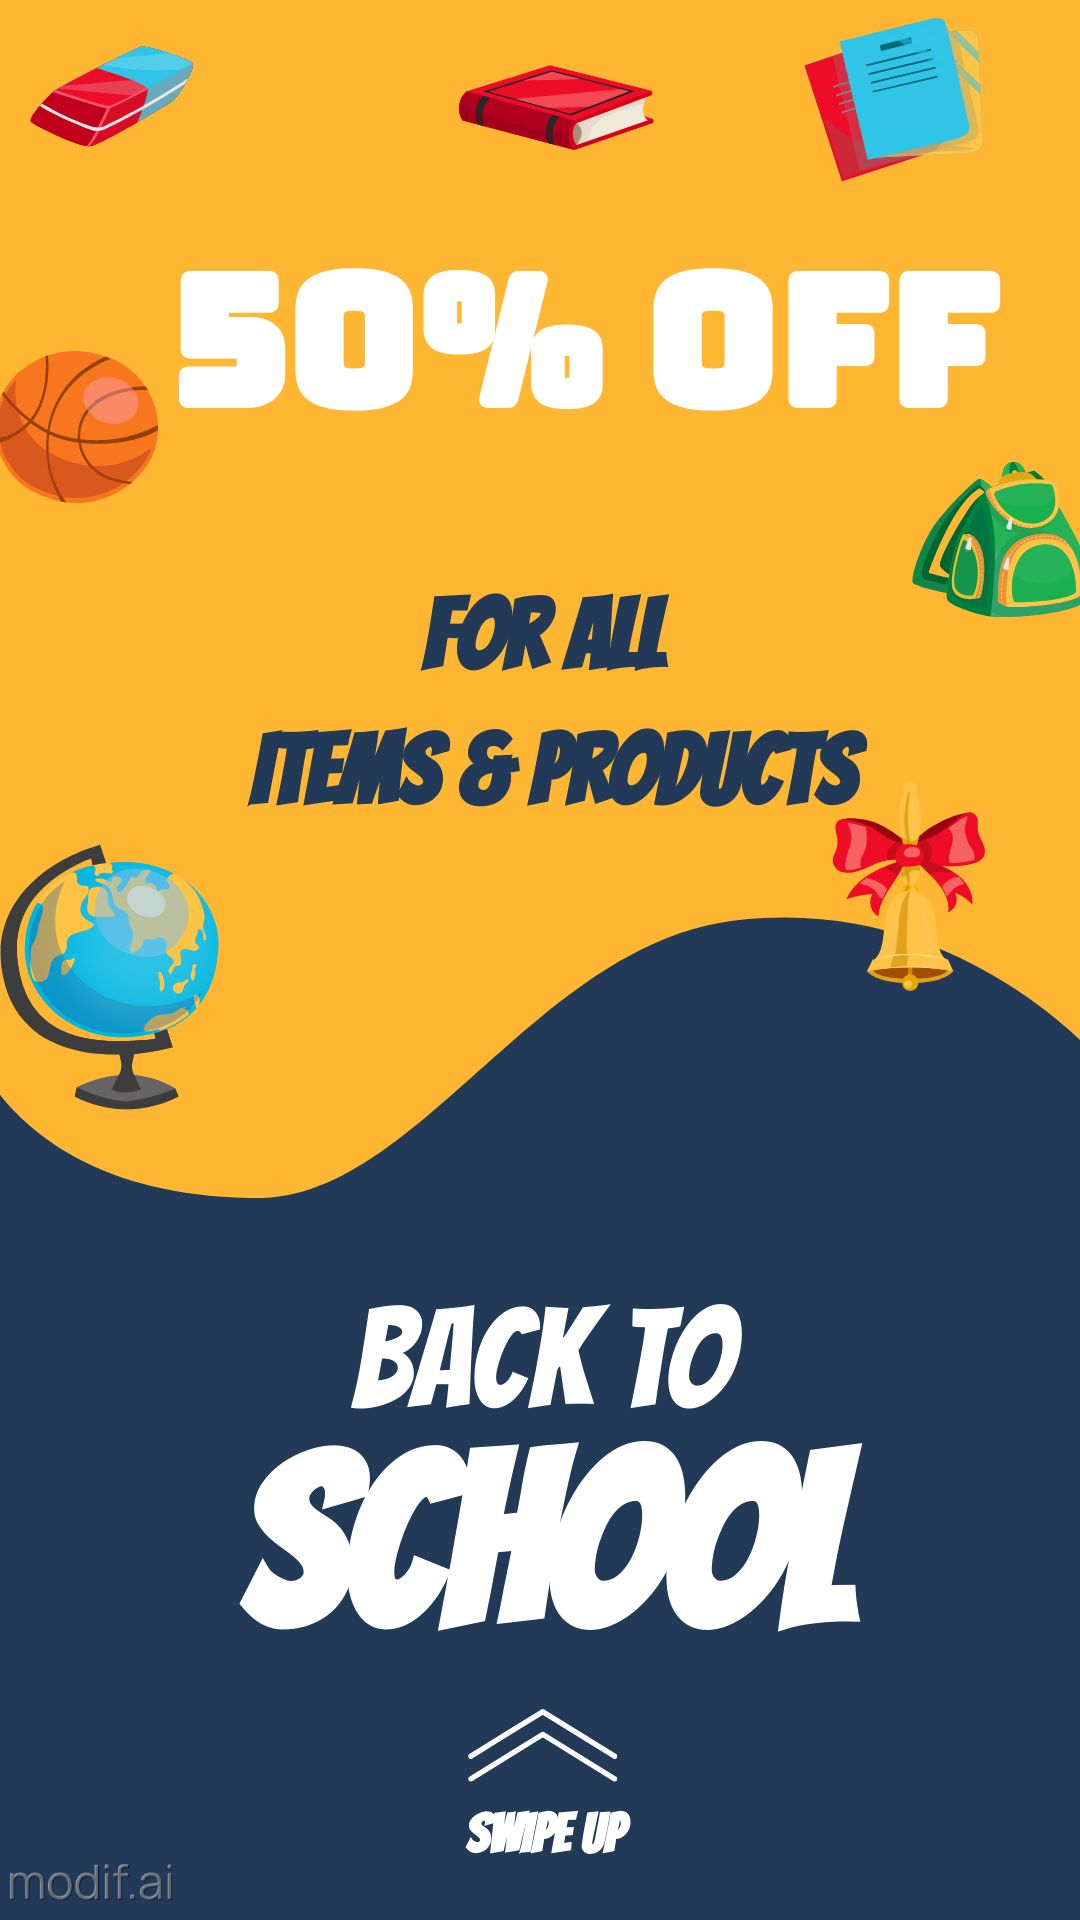 Special Discount for School Items